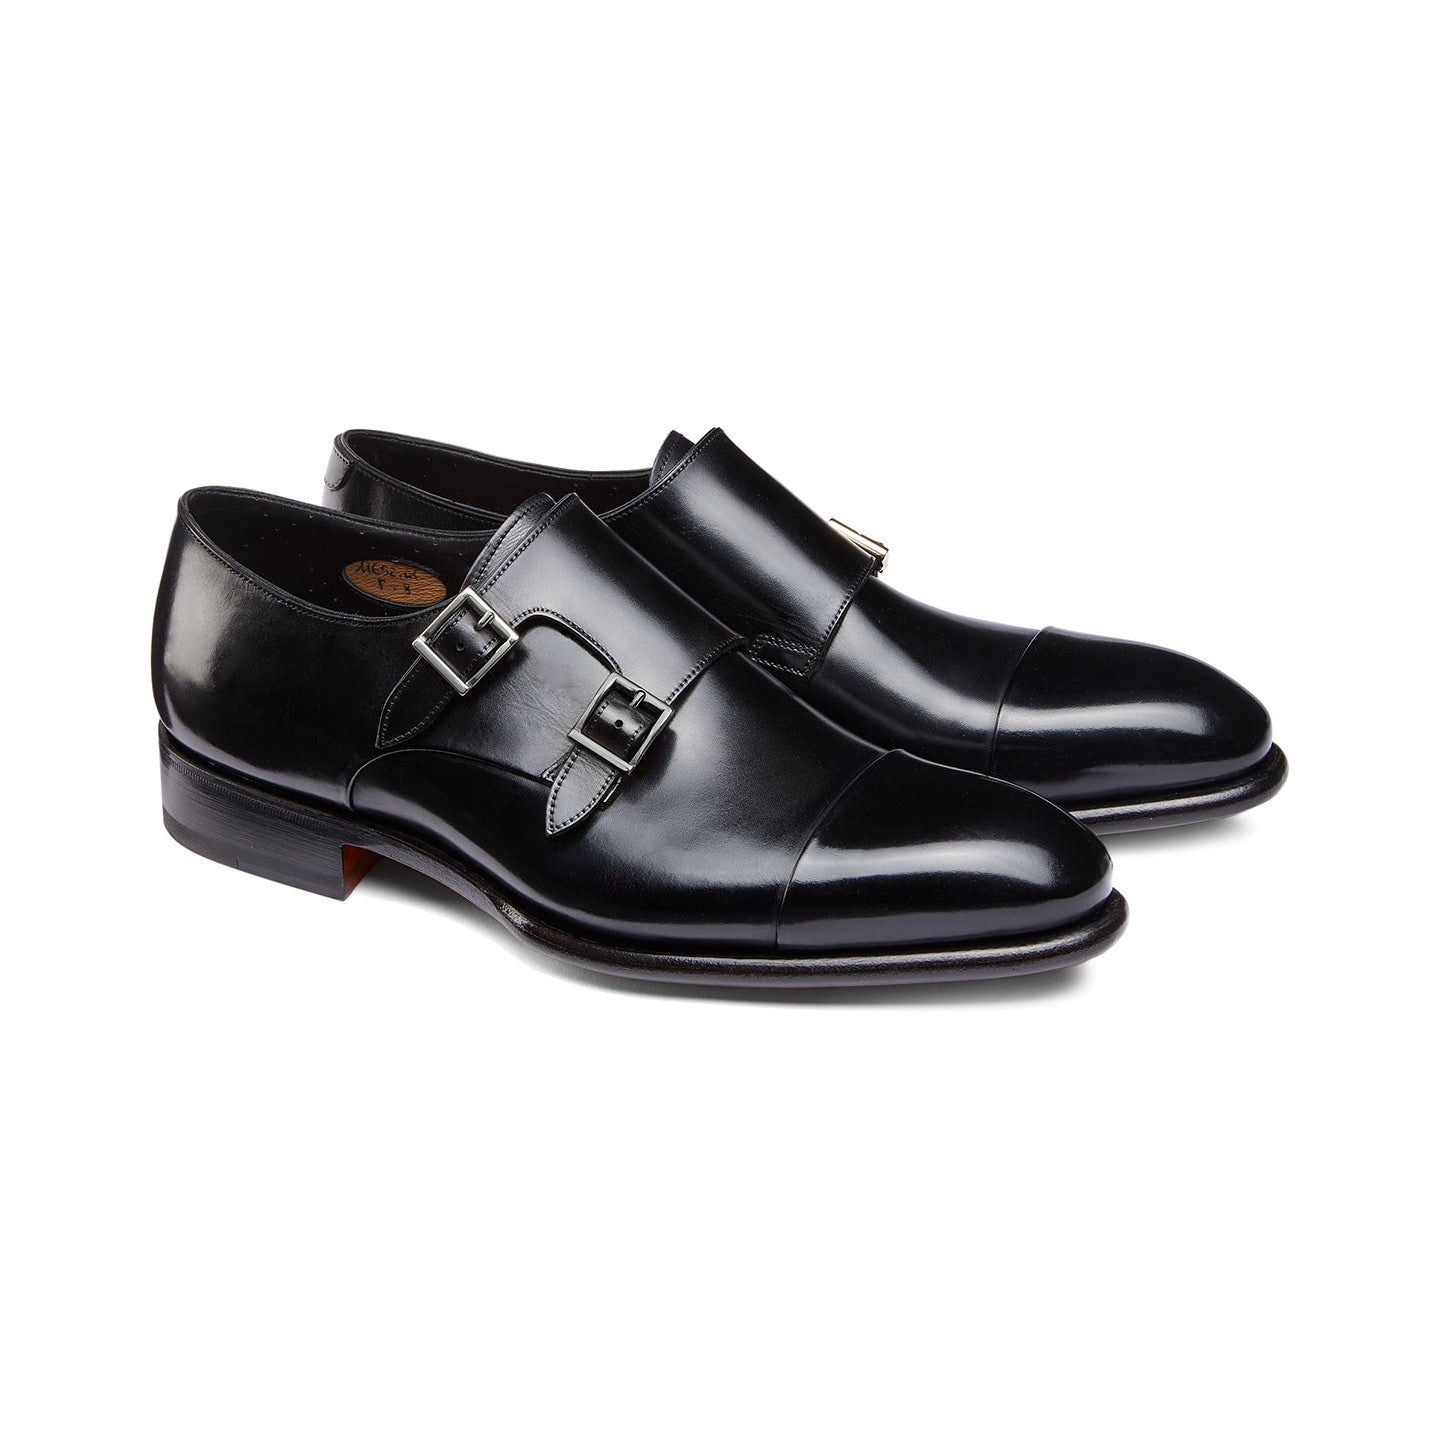 DOUBLE-BUCKLE LEATHER SHOES